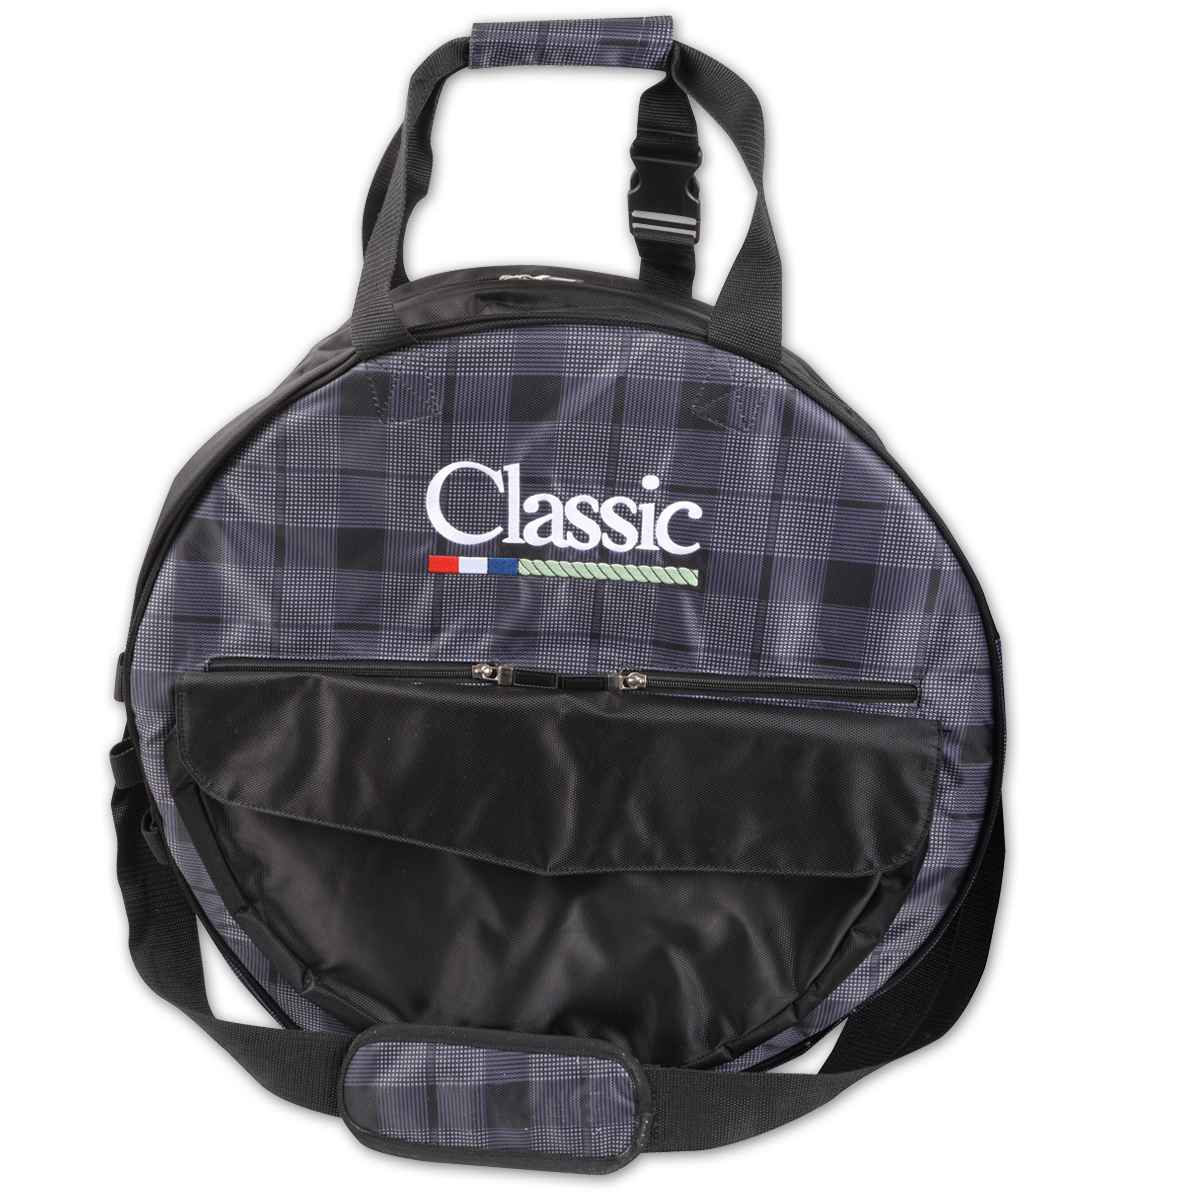 Classic Deluxe Rope Bag